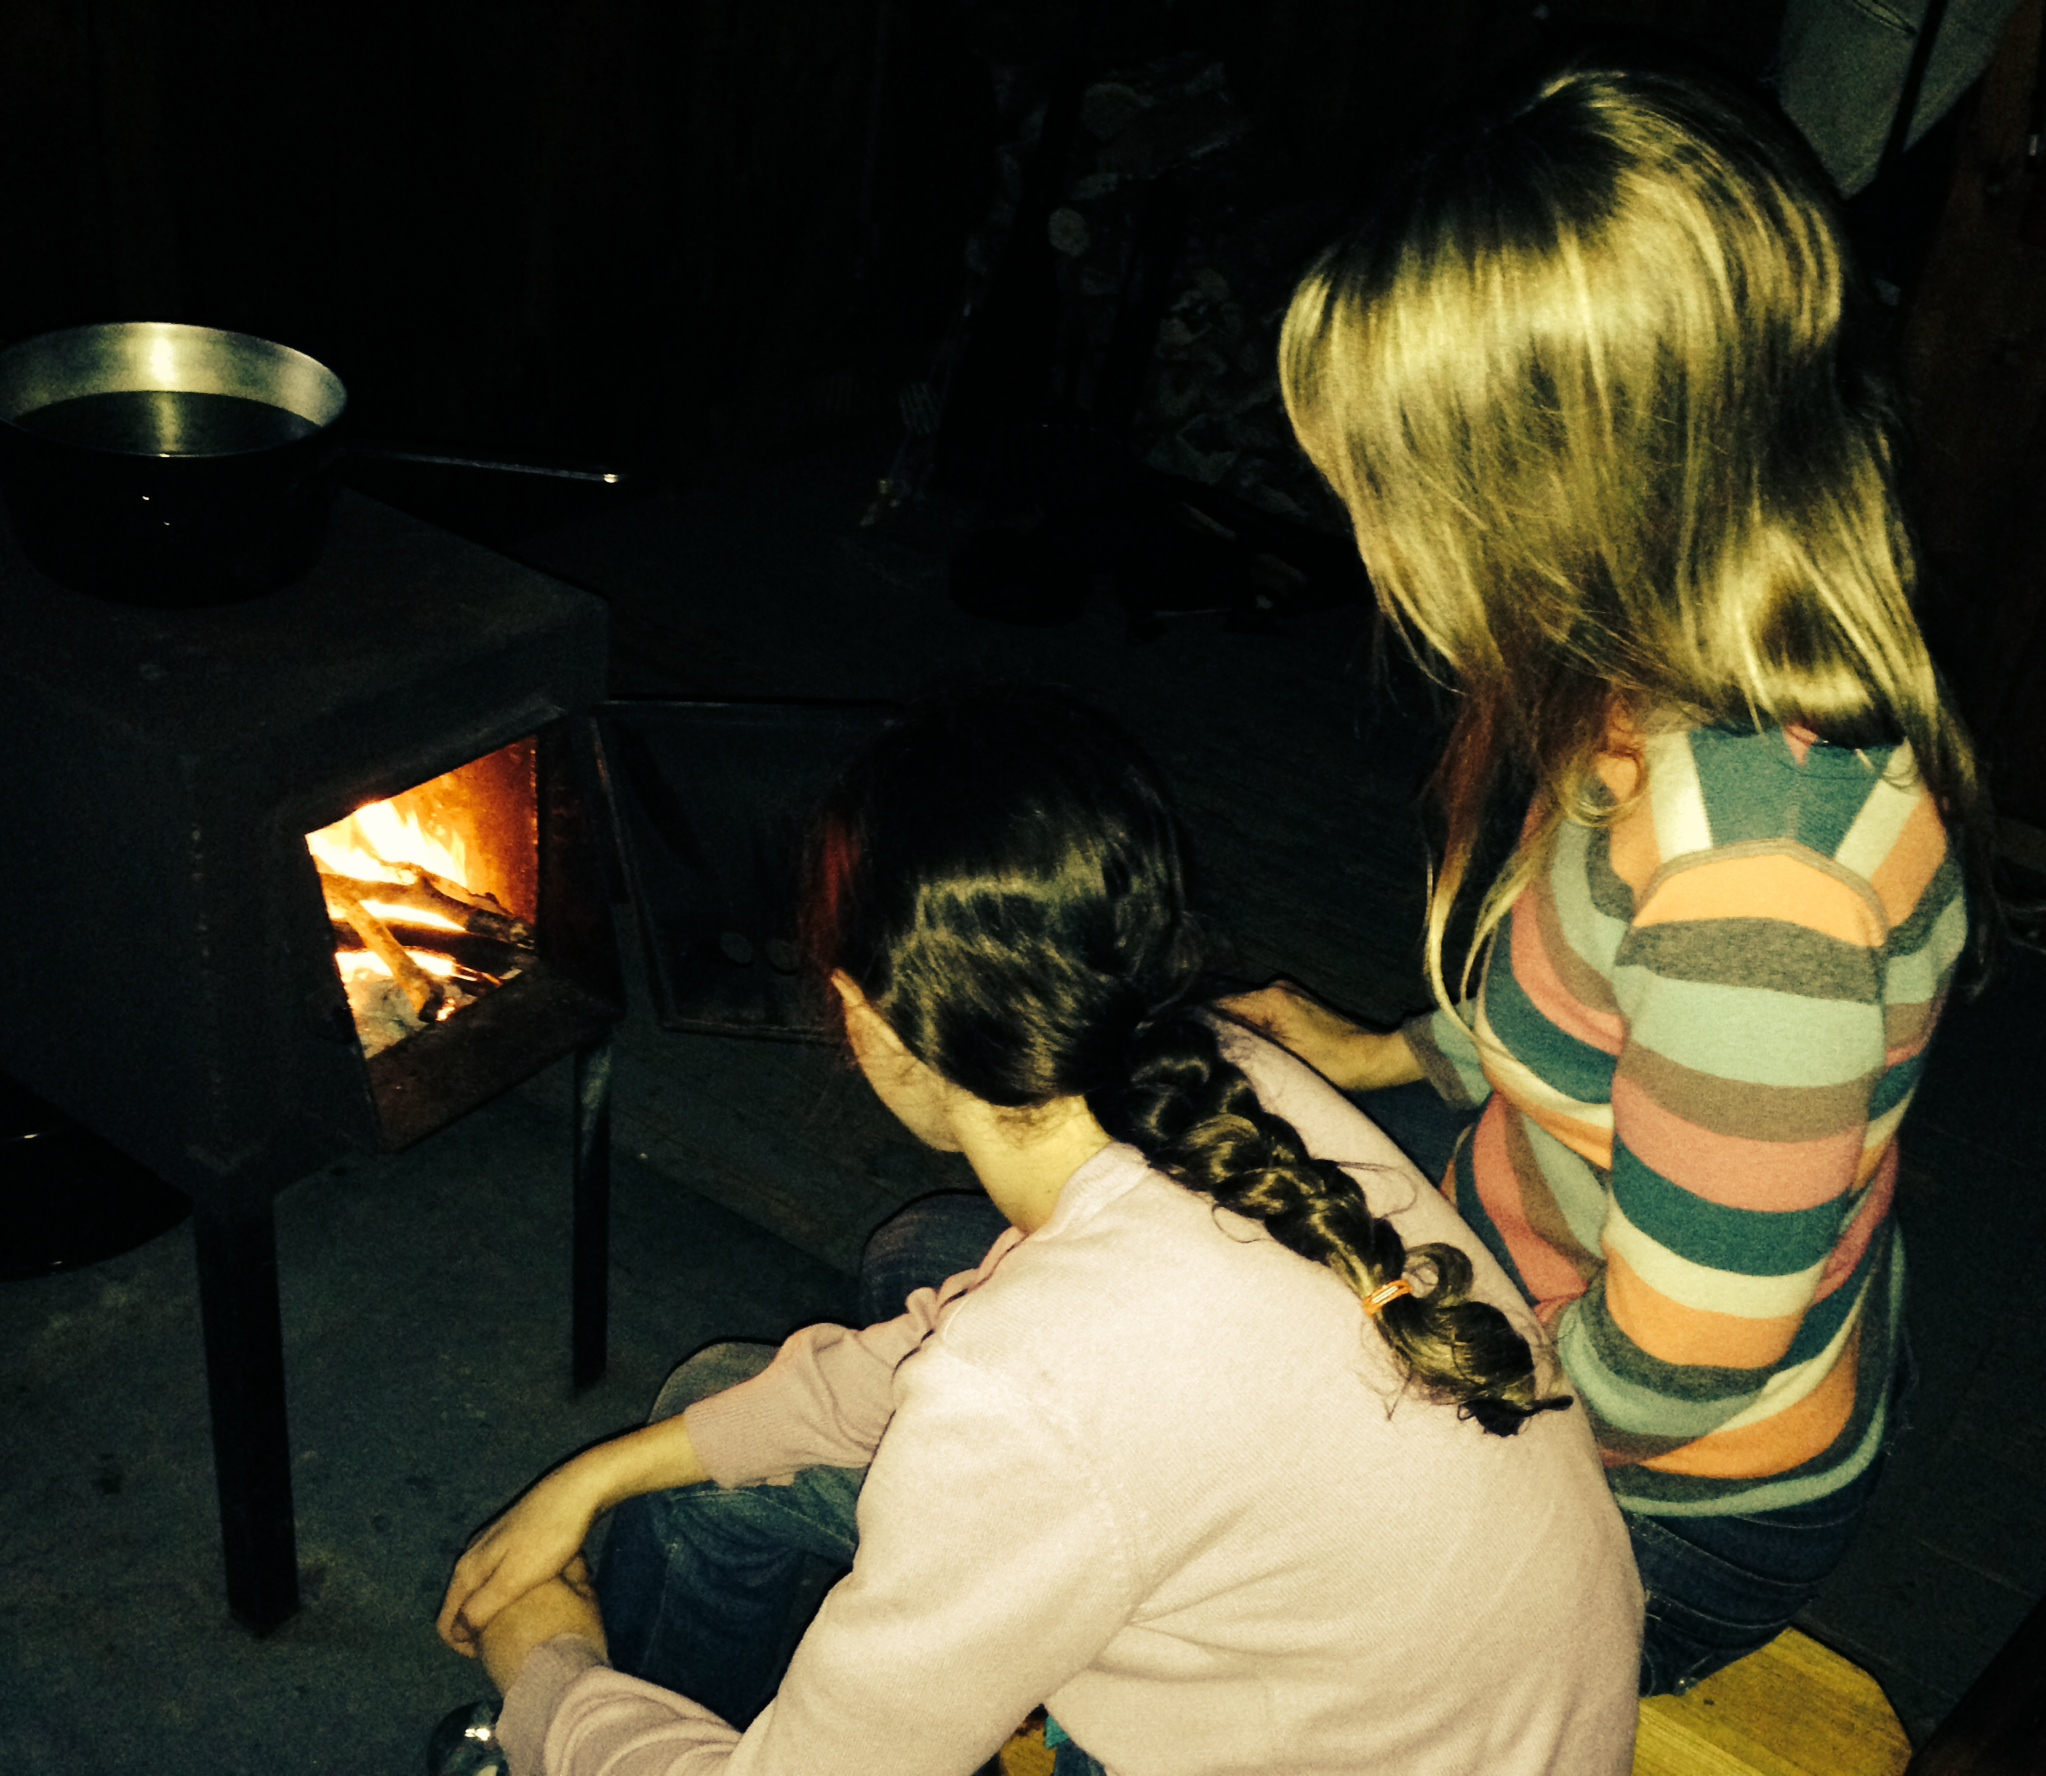 As it turned out, our boredom evolved into several relaxing activities, among them making a fire, a job my daughter and I shared and enjoyed together.